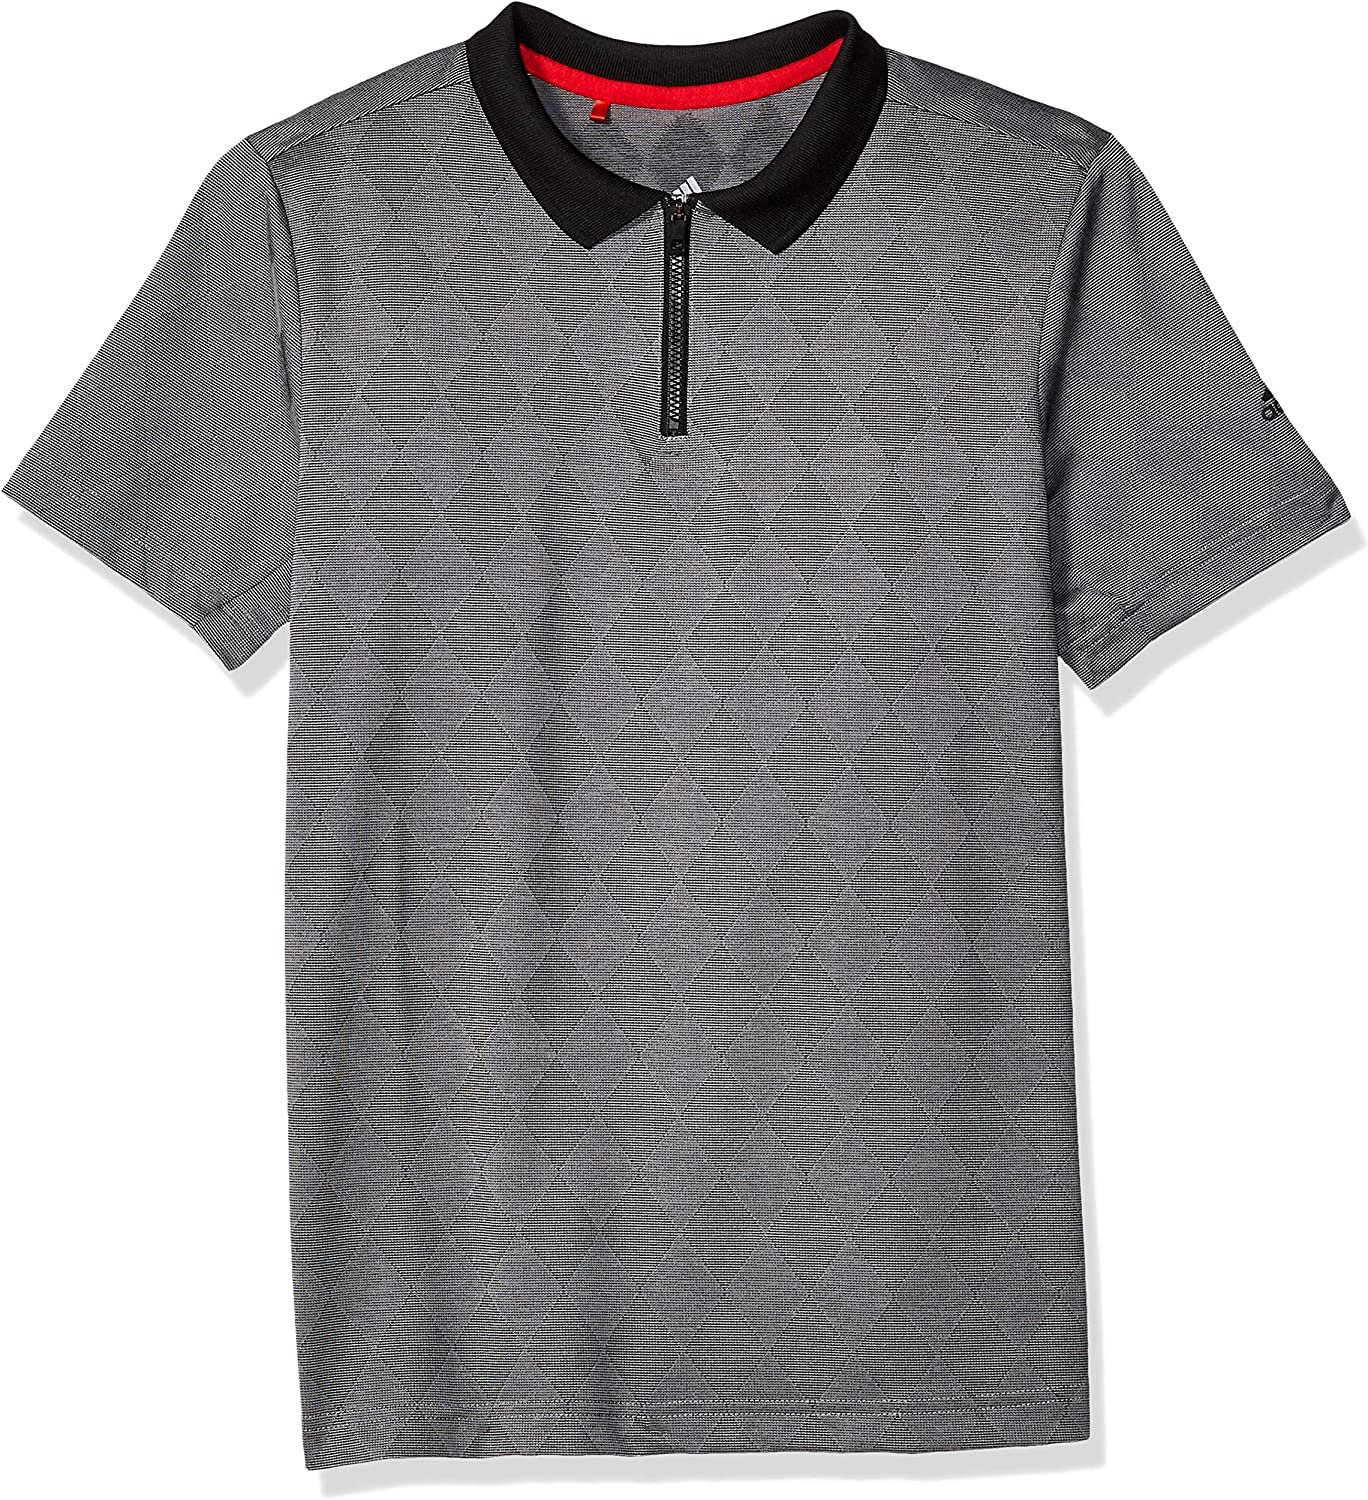 adidas Mail order Max 51% OFF Youth Tennis Barricade Polo